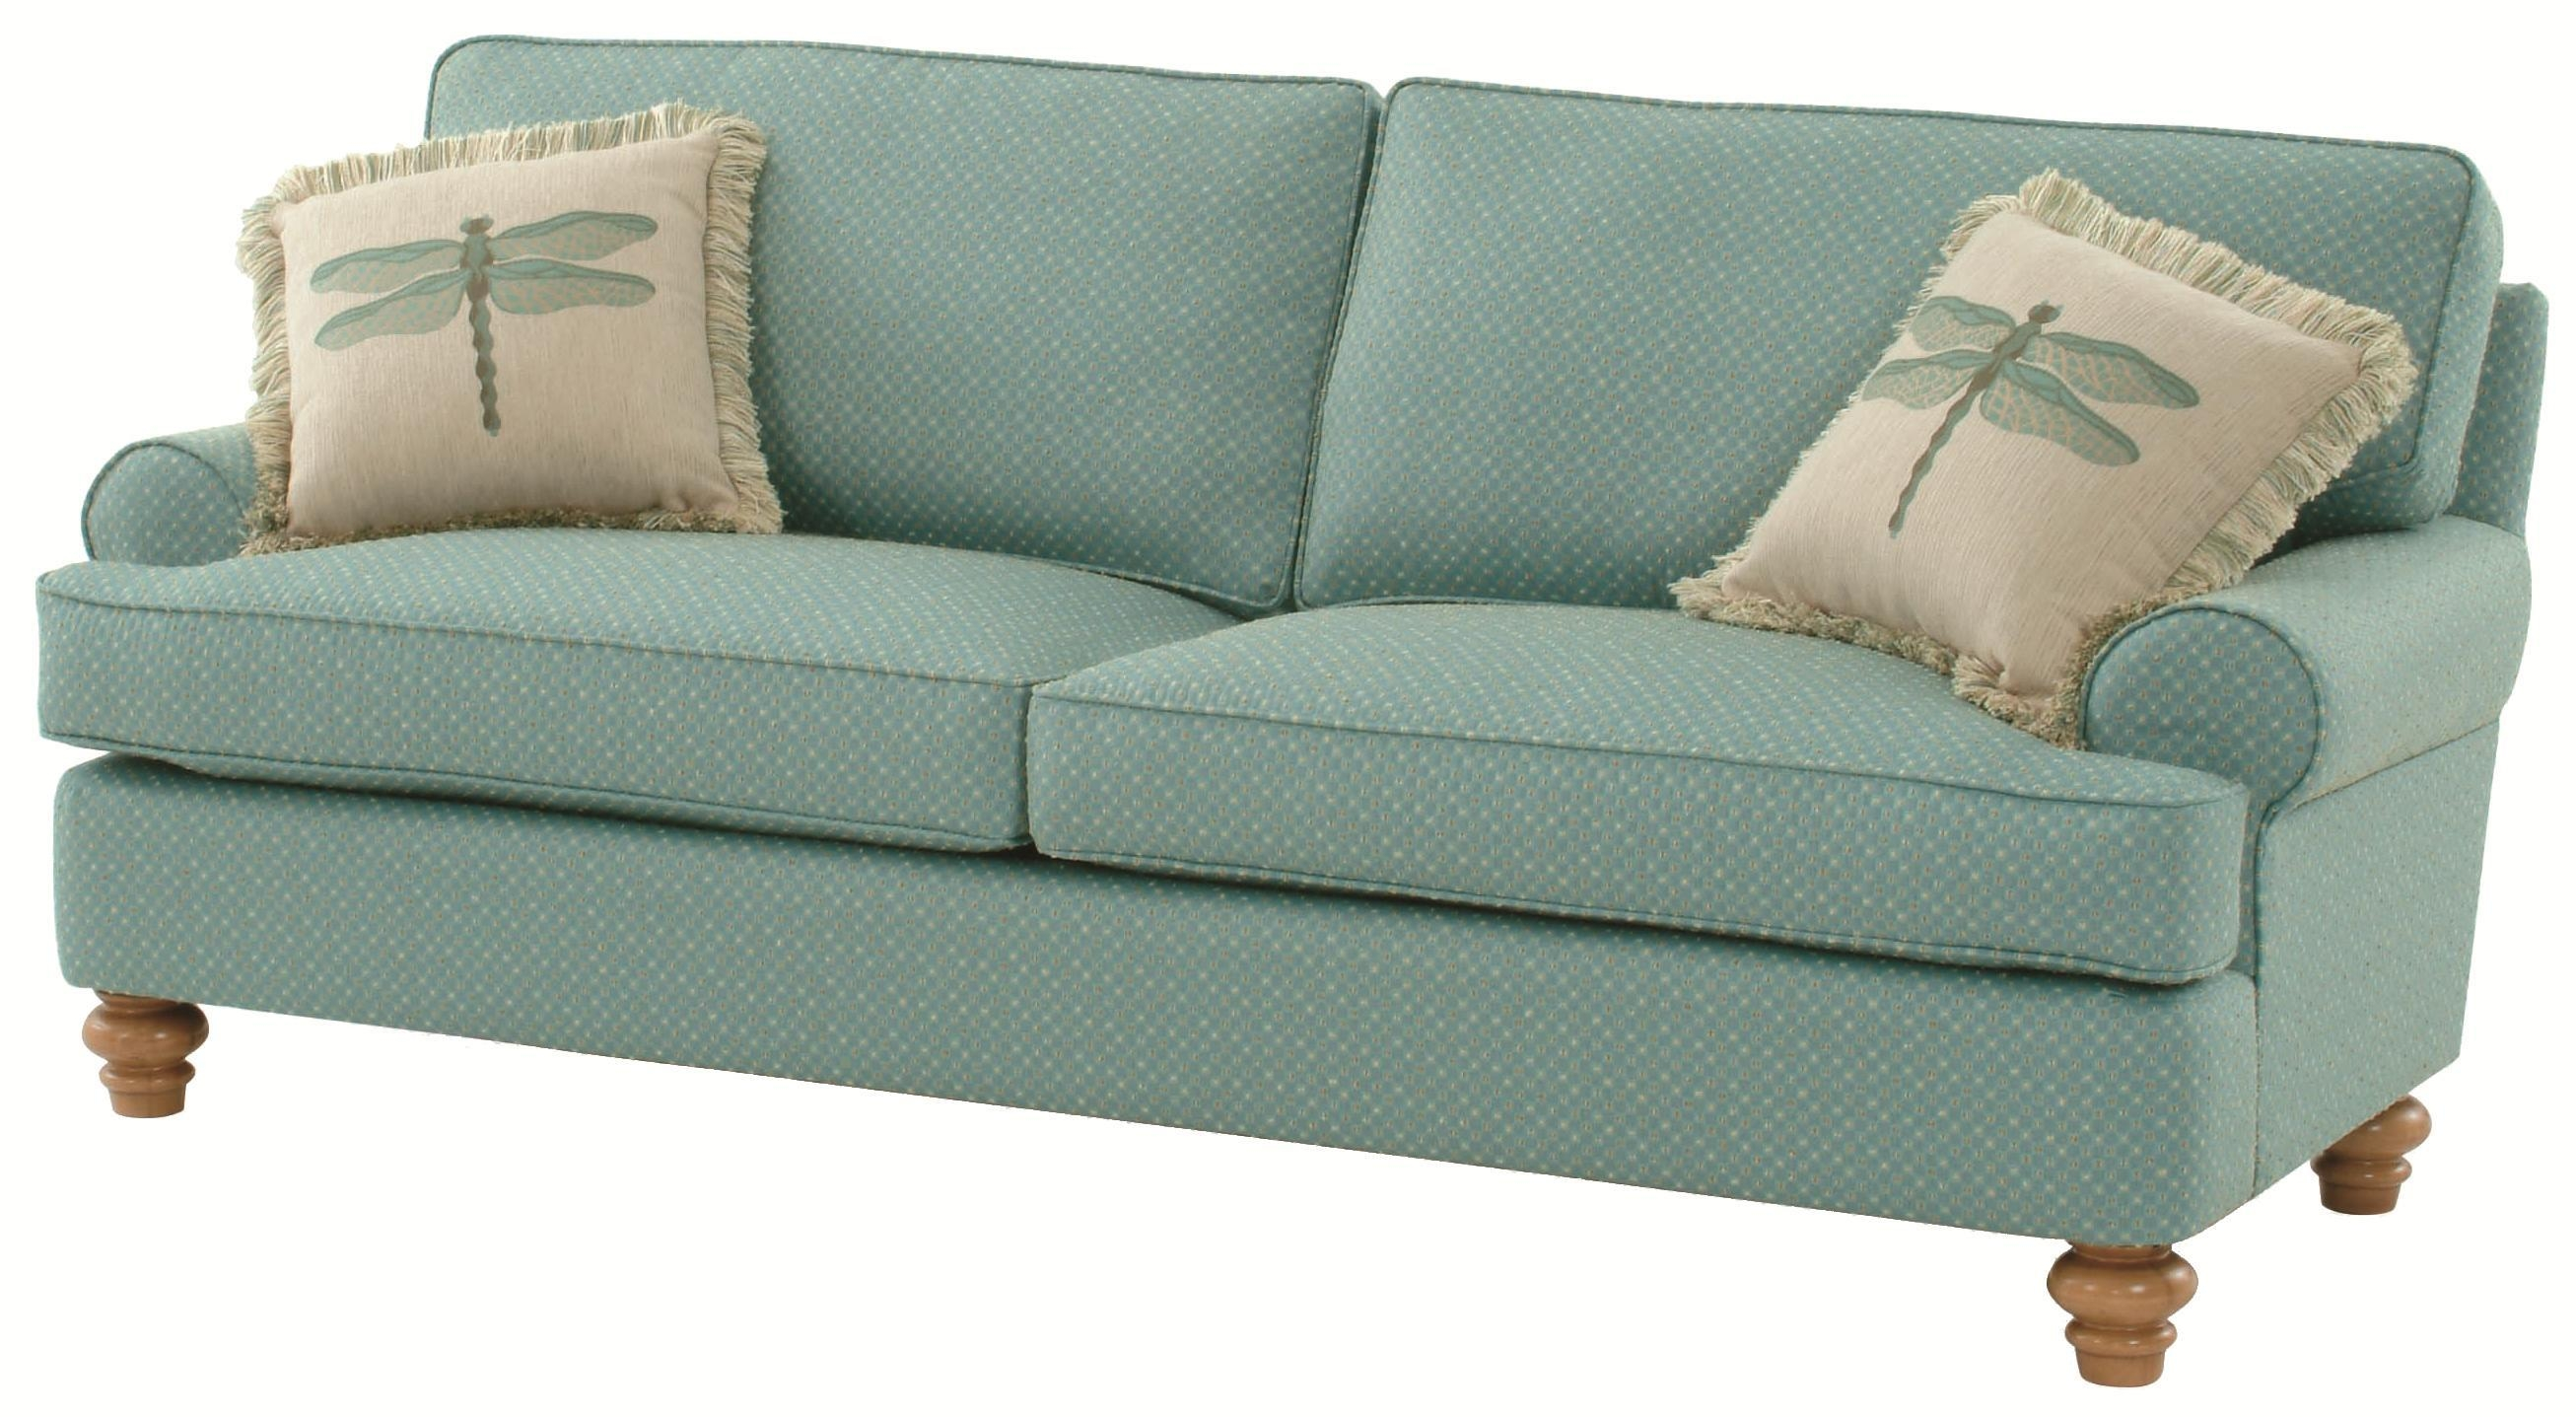 Braxton Culler Sofas & Accent Sofas Store – Dealer Locator With Braxton Culler Sofas (Image 14 of 20)